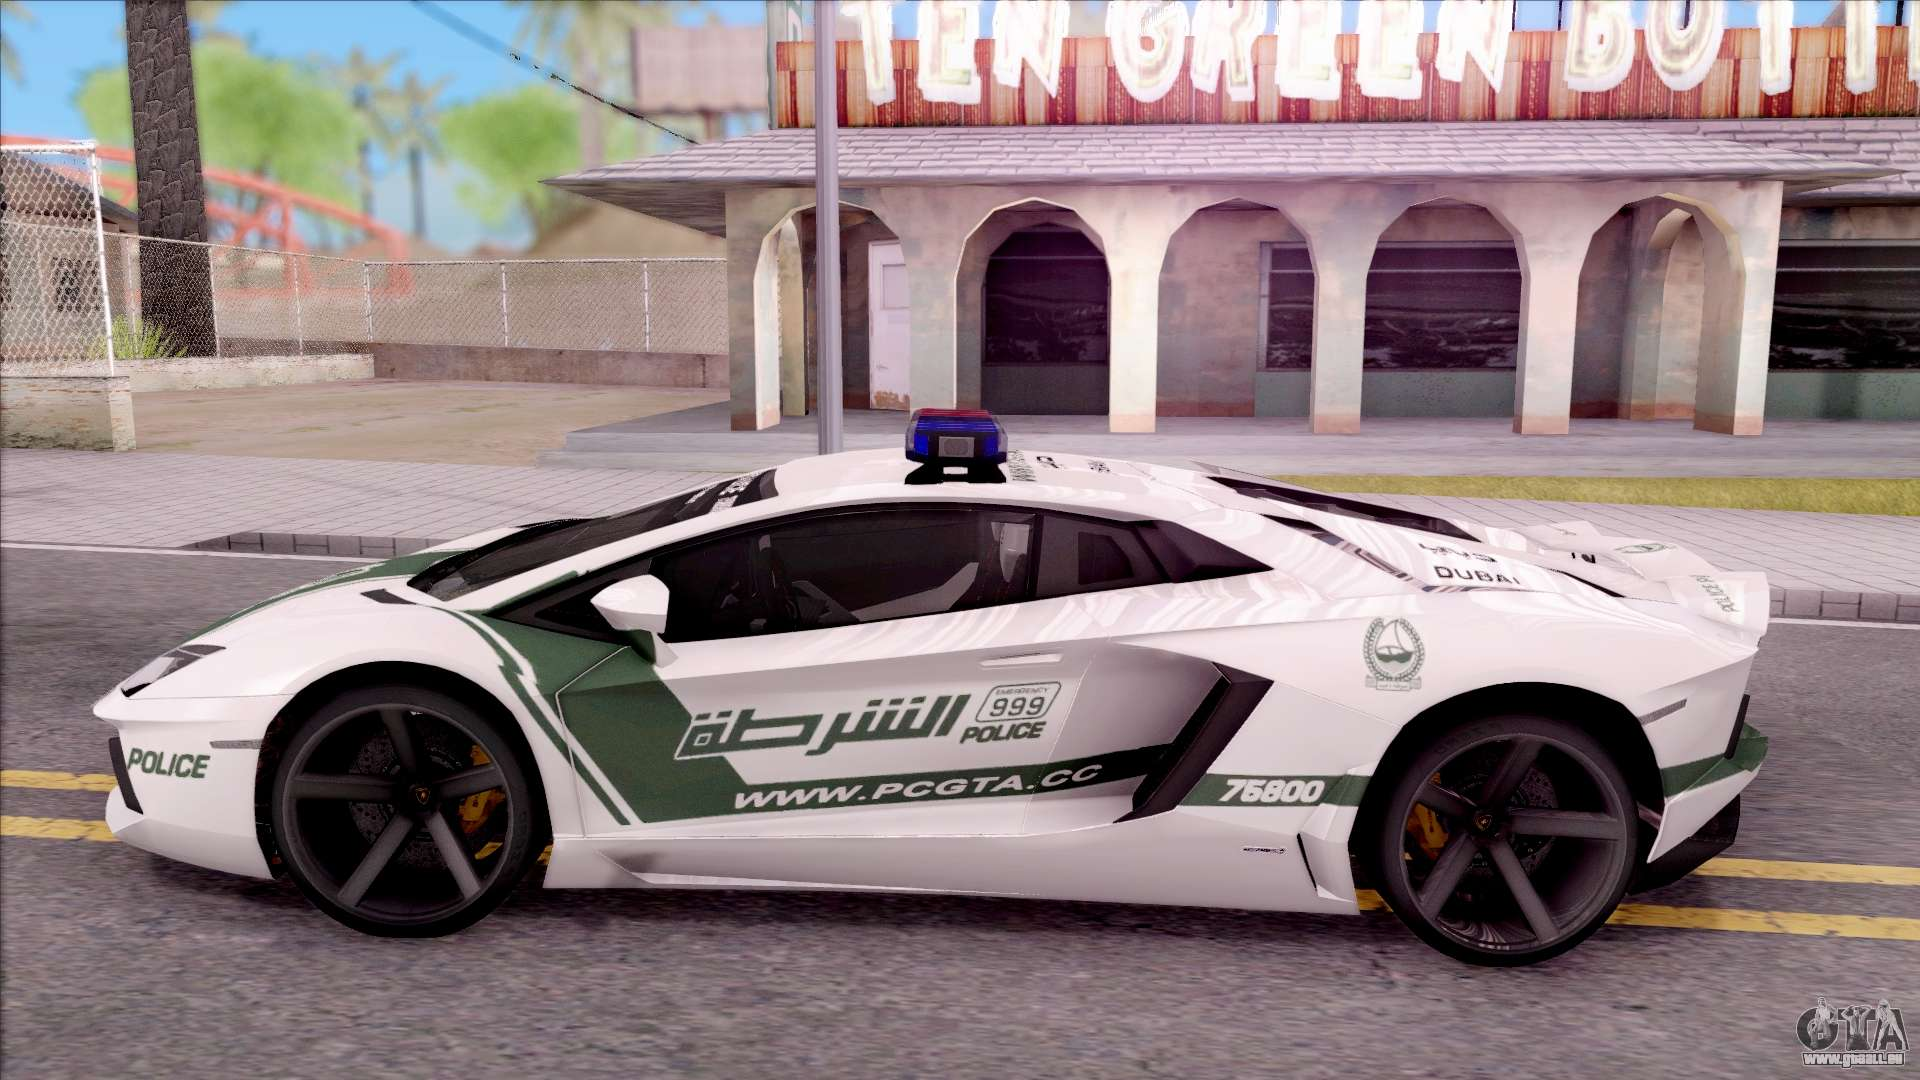 lamborghini aventador lp700 4 mod with 92566 Lamborghini Aventador Lp700 4 Dubai Hs Police on Index php in addition 92566 Lamborghini Aventador Lp700 4 Dubai Hs Police furthermore Fortnite Video Replace Movies And Games also Gta 5 Mod Brings Real Cars To San Andreas further 73016 Lamborghini Aventador Lp700 4 V22.